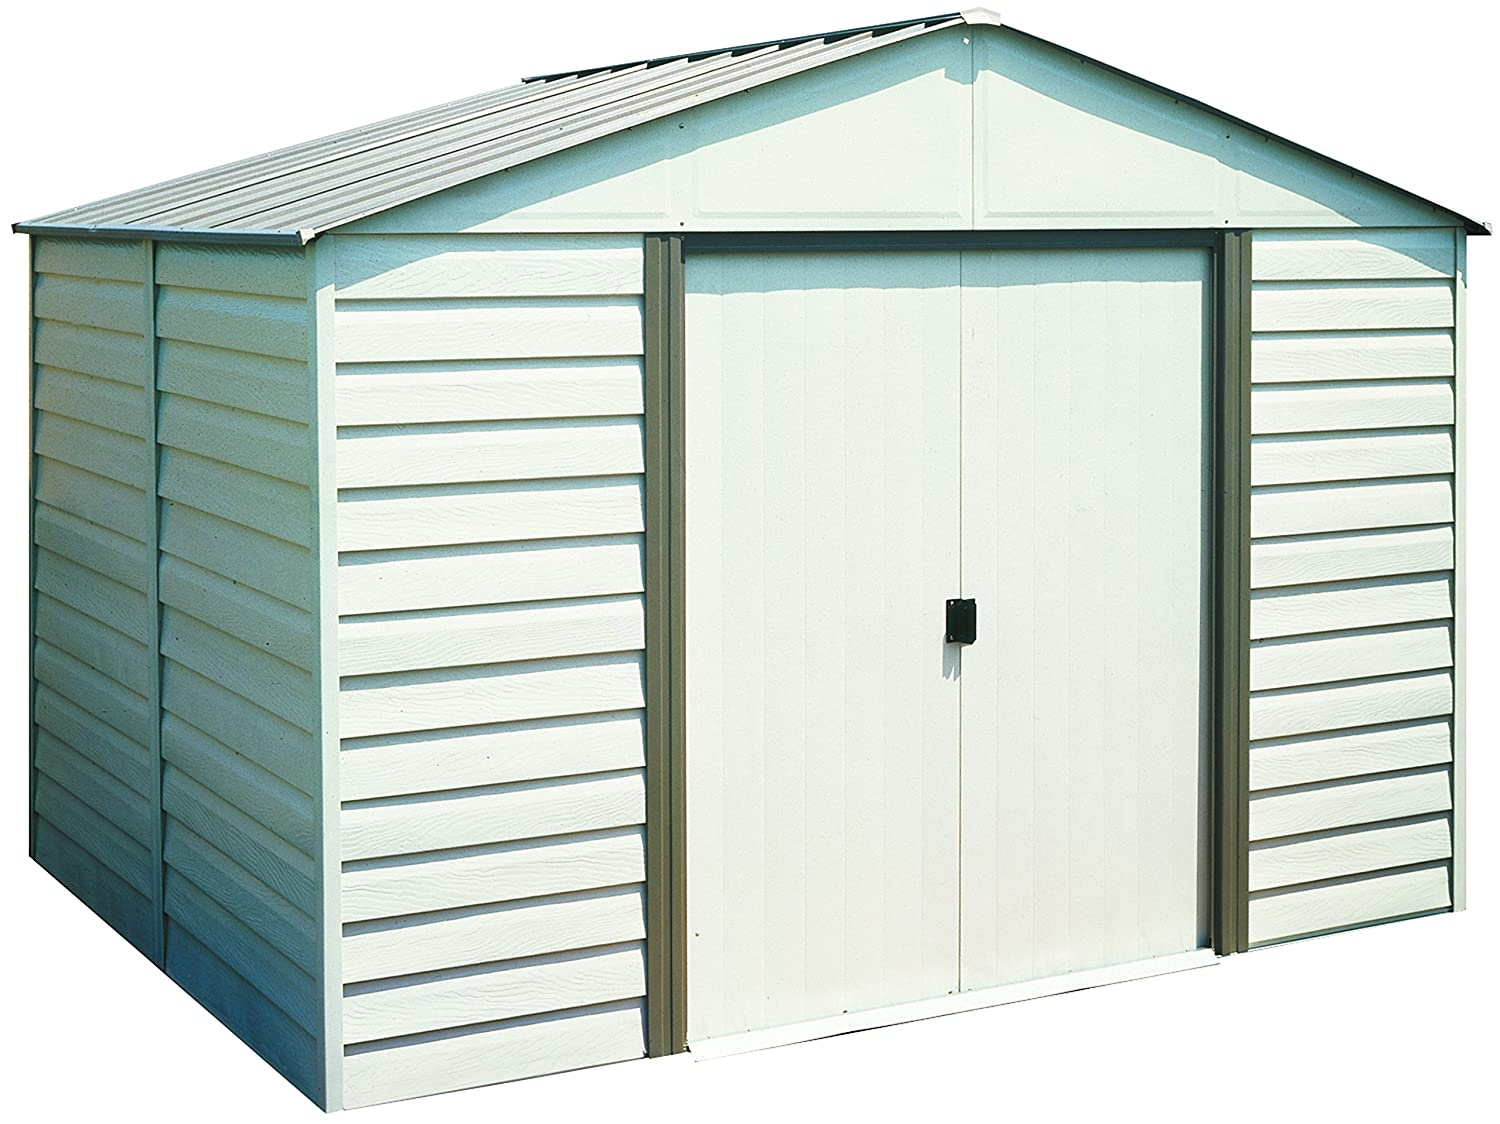 garden sheds dp sheridan outdoor meadow storage com arrow vinyl ft almond green amazon steel x shed